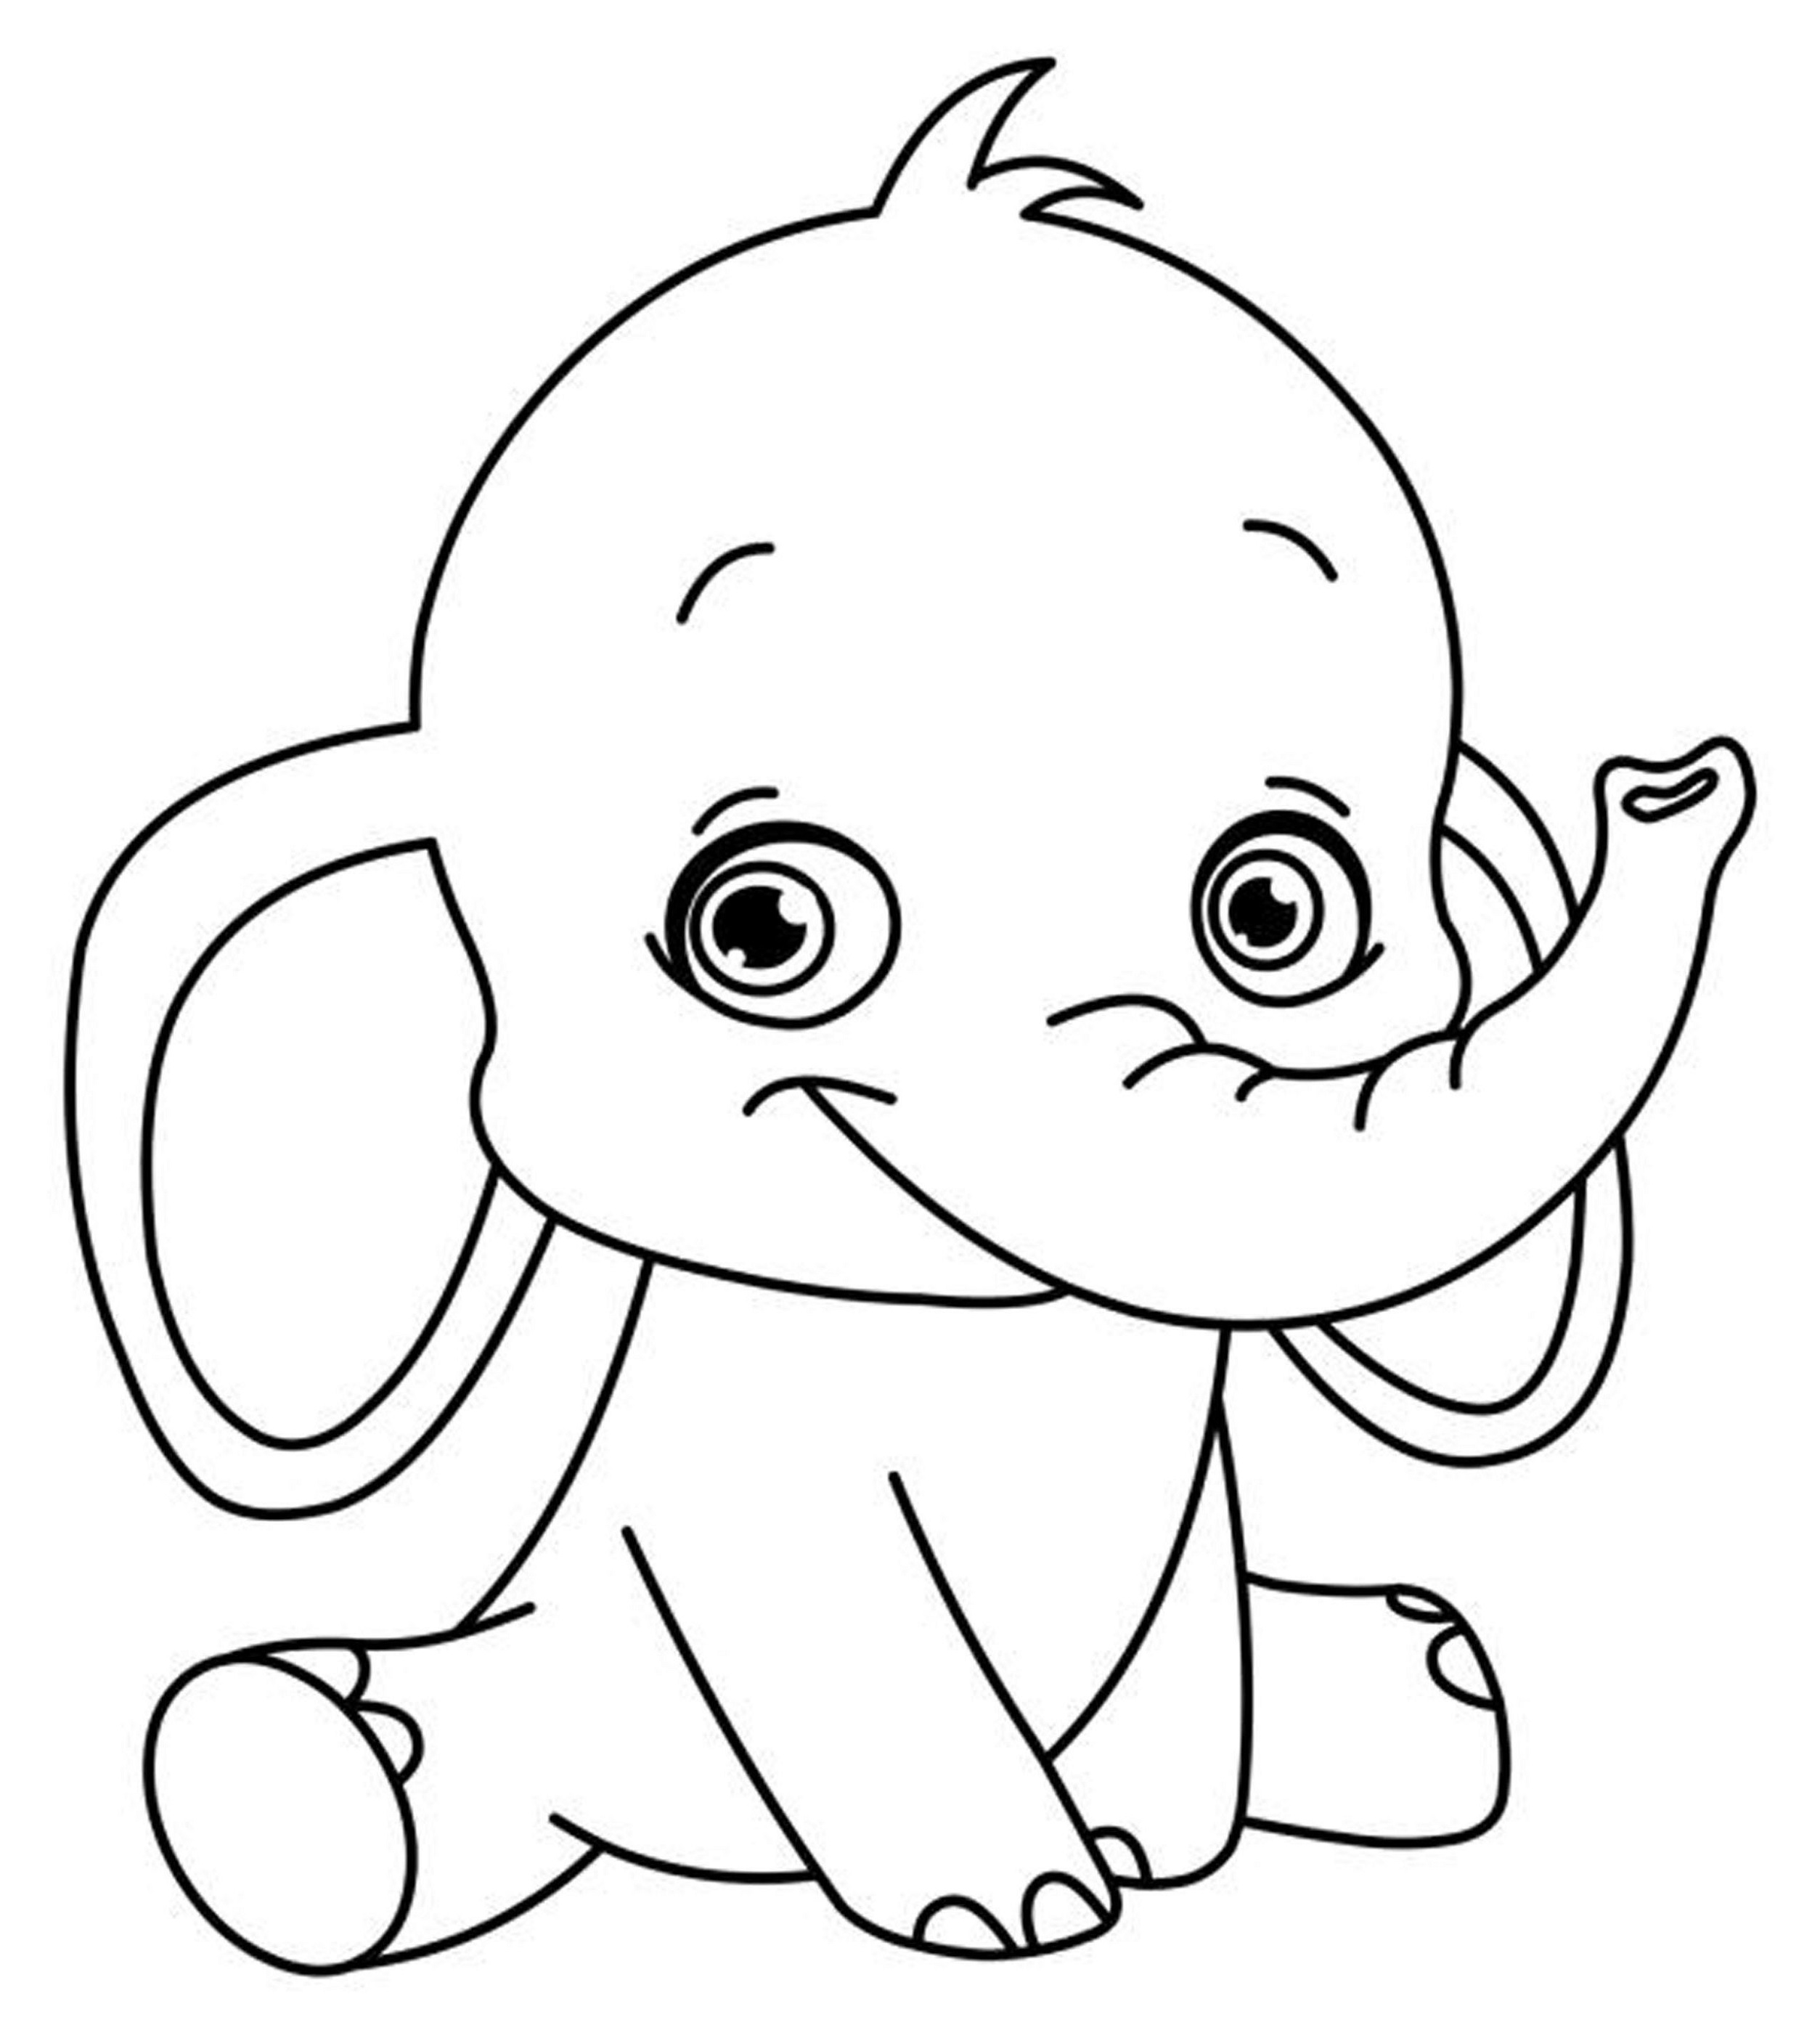 Easy Printable Coloring Pages Elephant